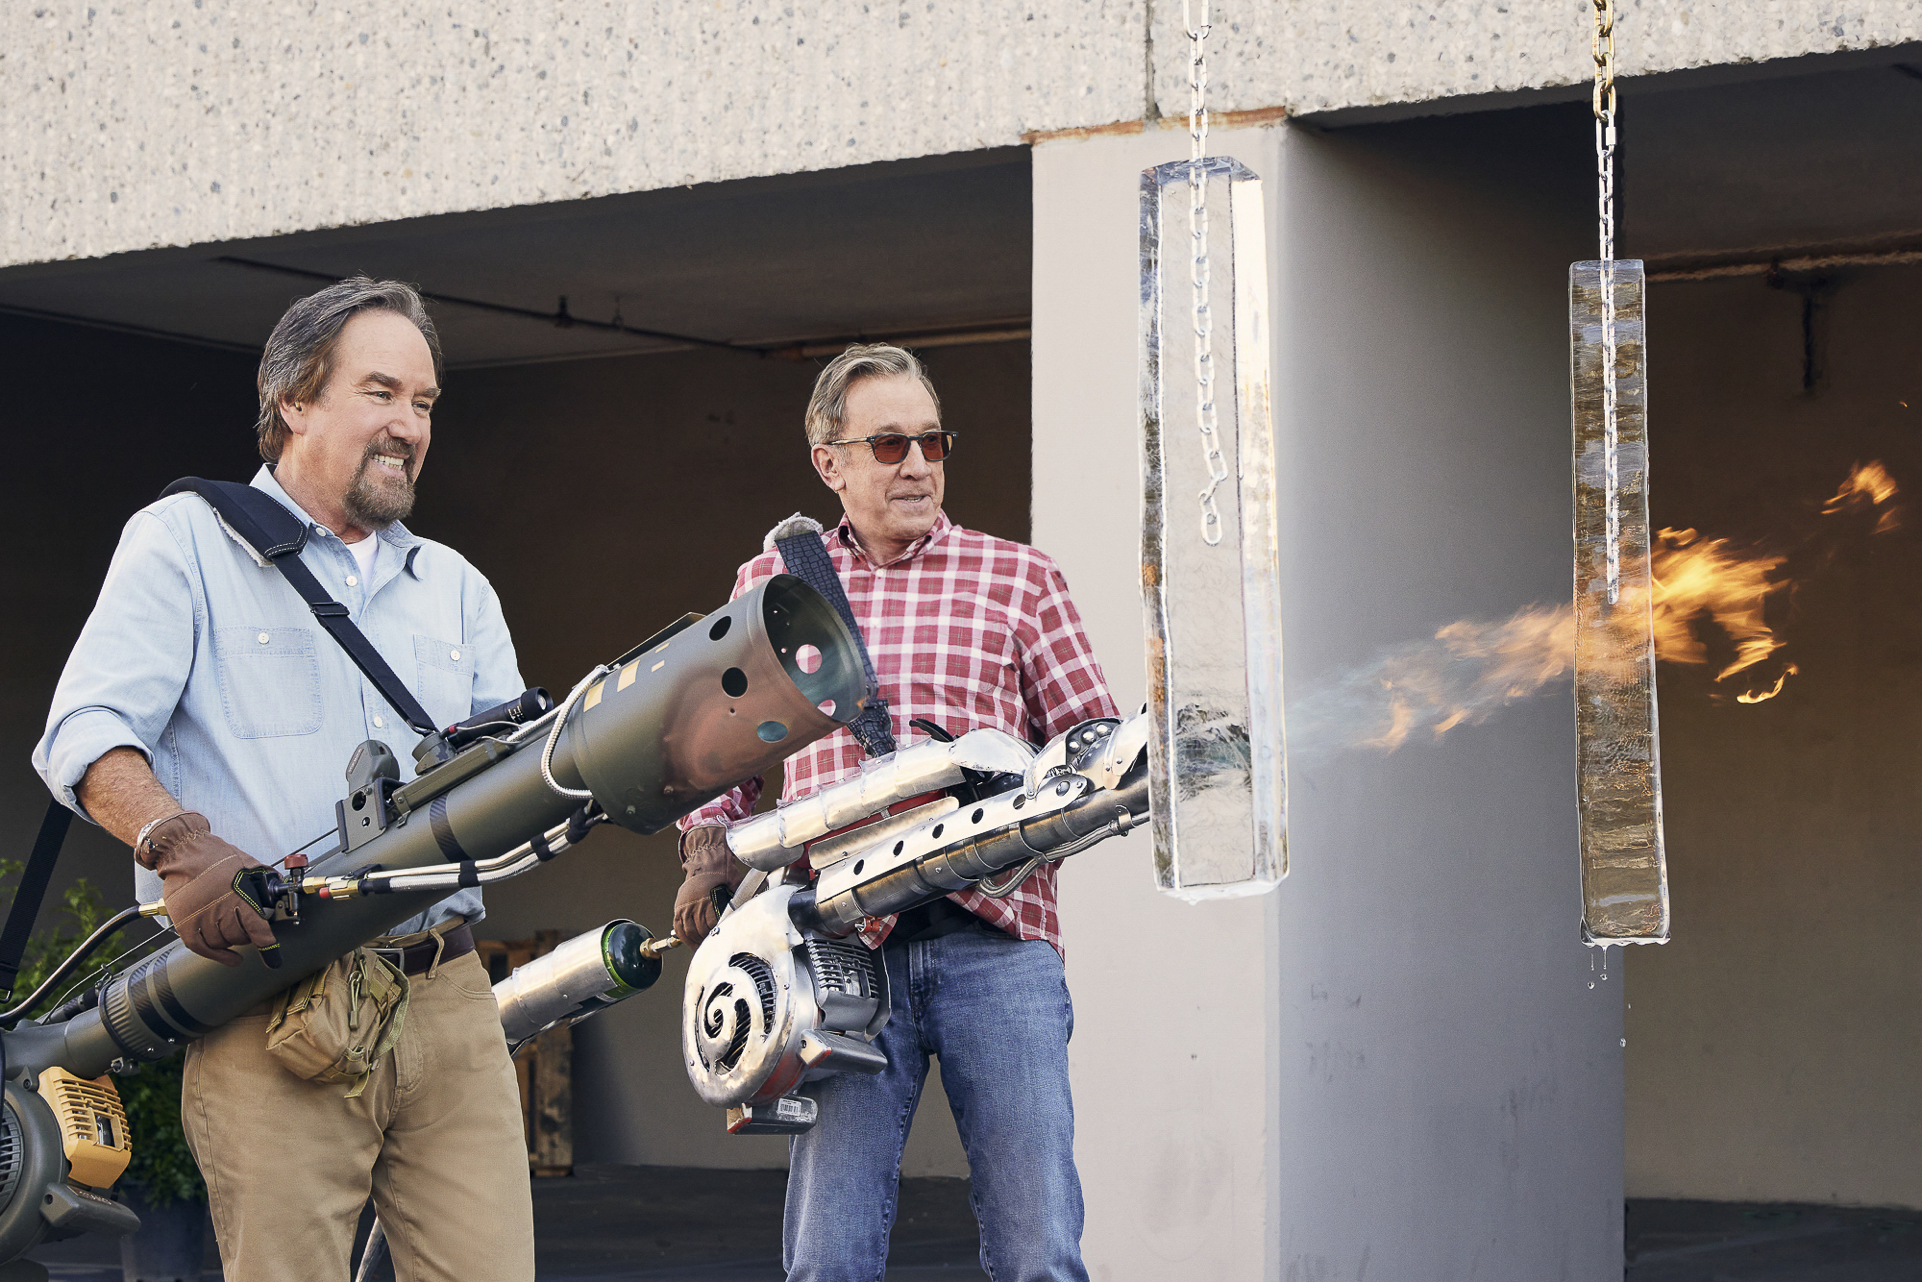 Tim Allen and Richard Karn test flamethrowers on the History show Assembly Required.